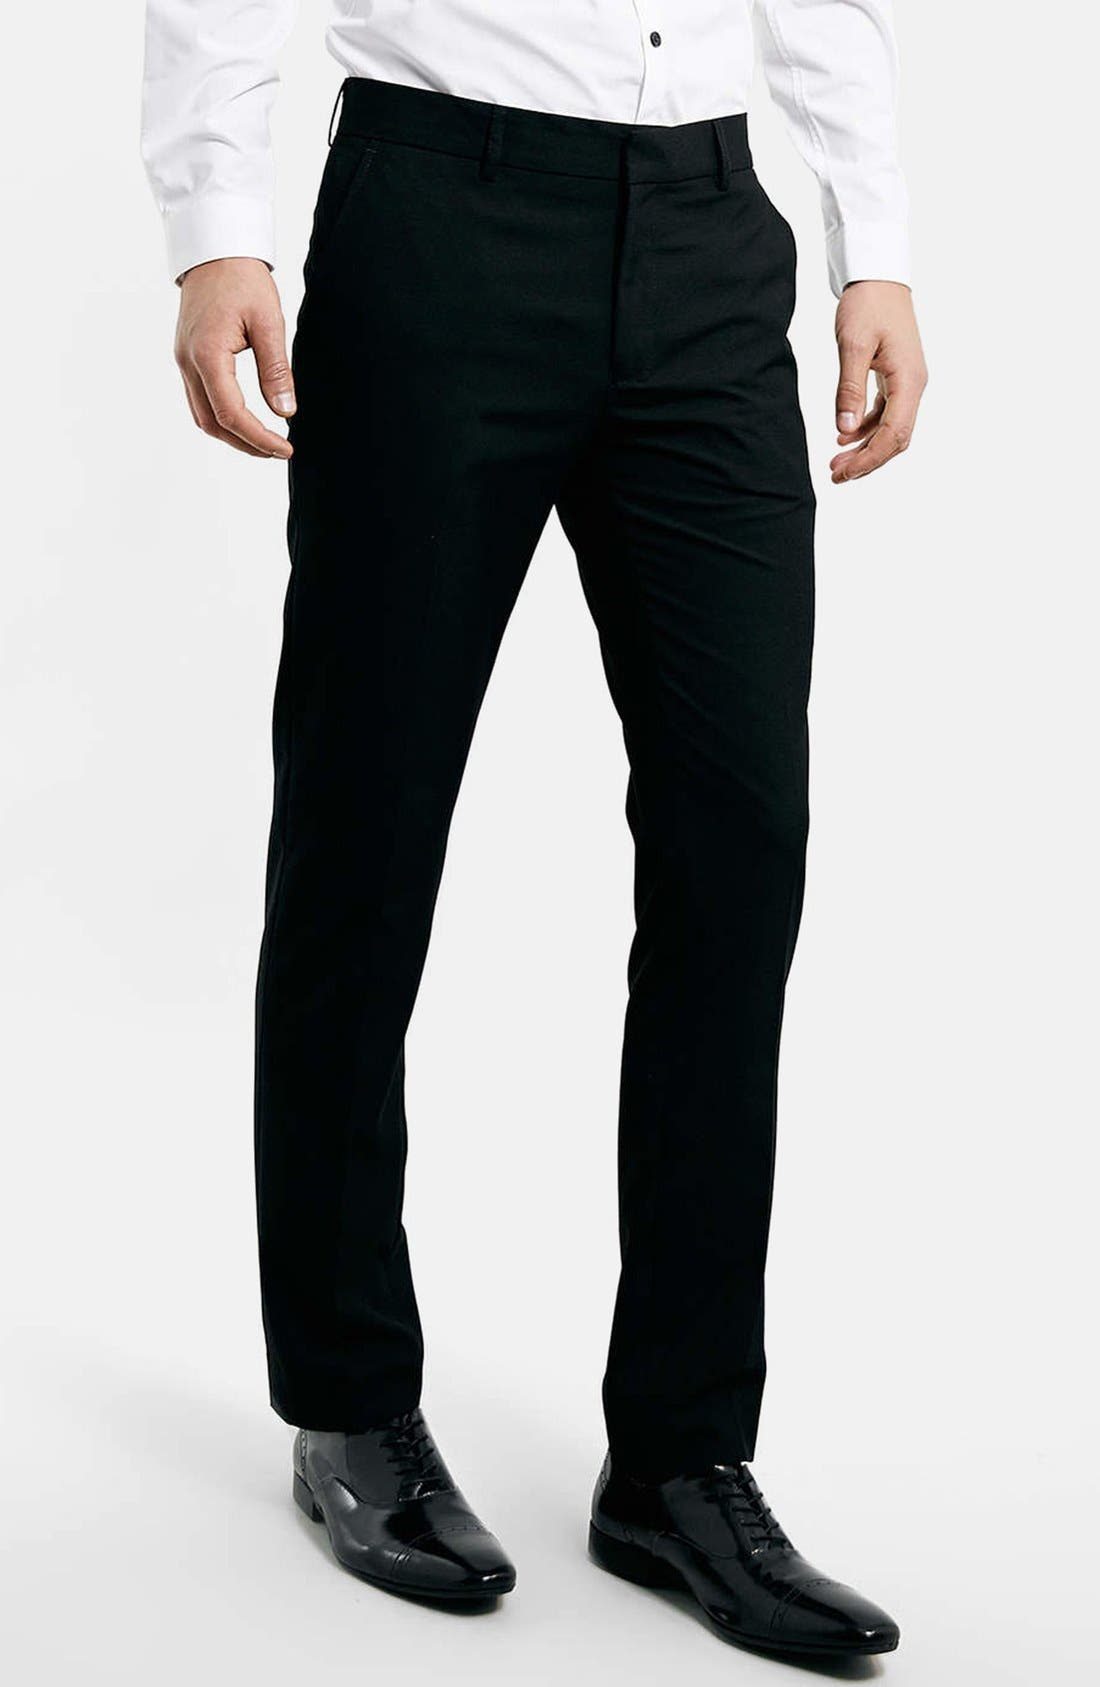 Alternate Image 1 Selected - Topman Black Skinny Fit Trousers